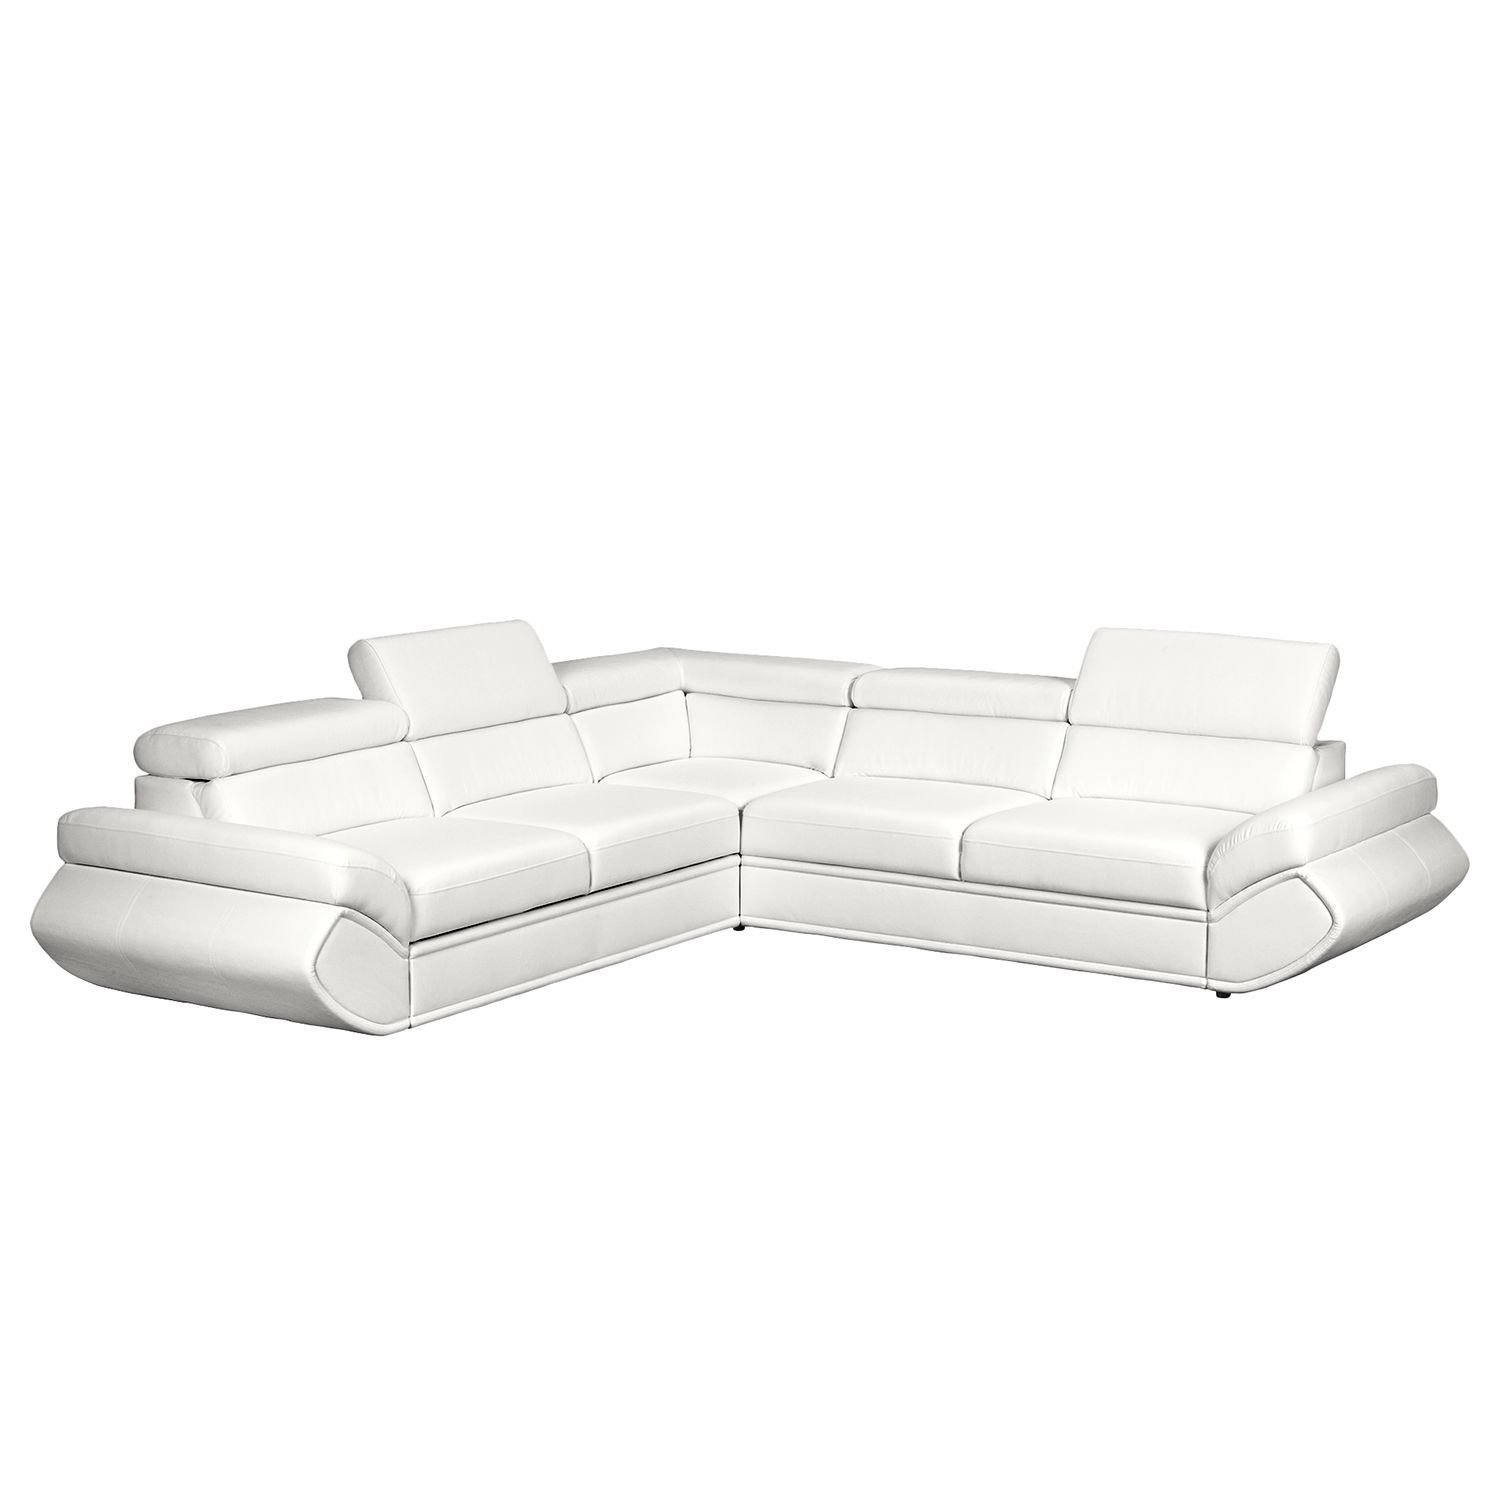 Ecksofa Clintwood Pin By Ladendirekt On Sofas Couches Möbel Sofas Möbel Sofa